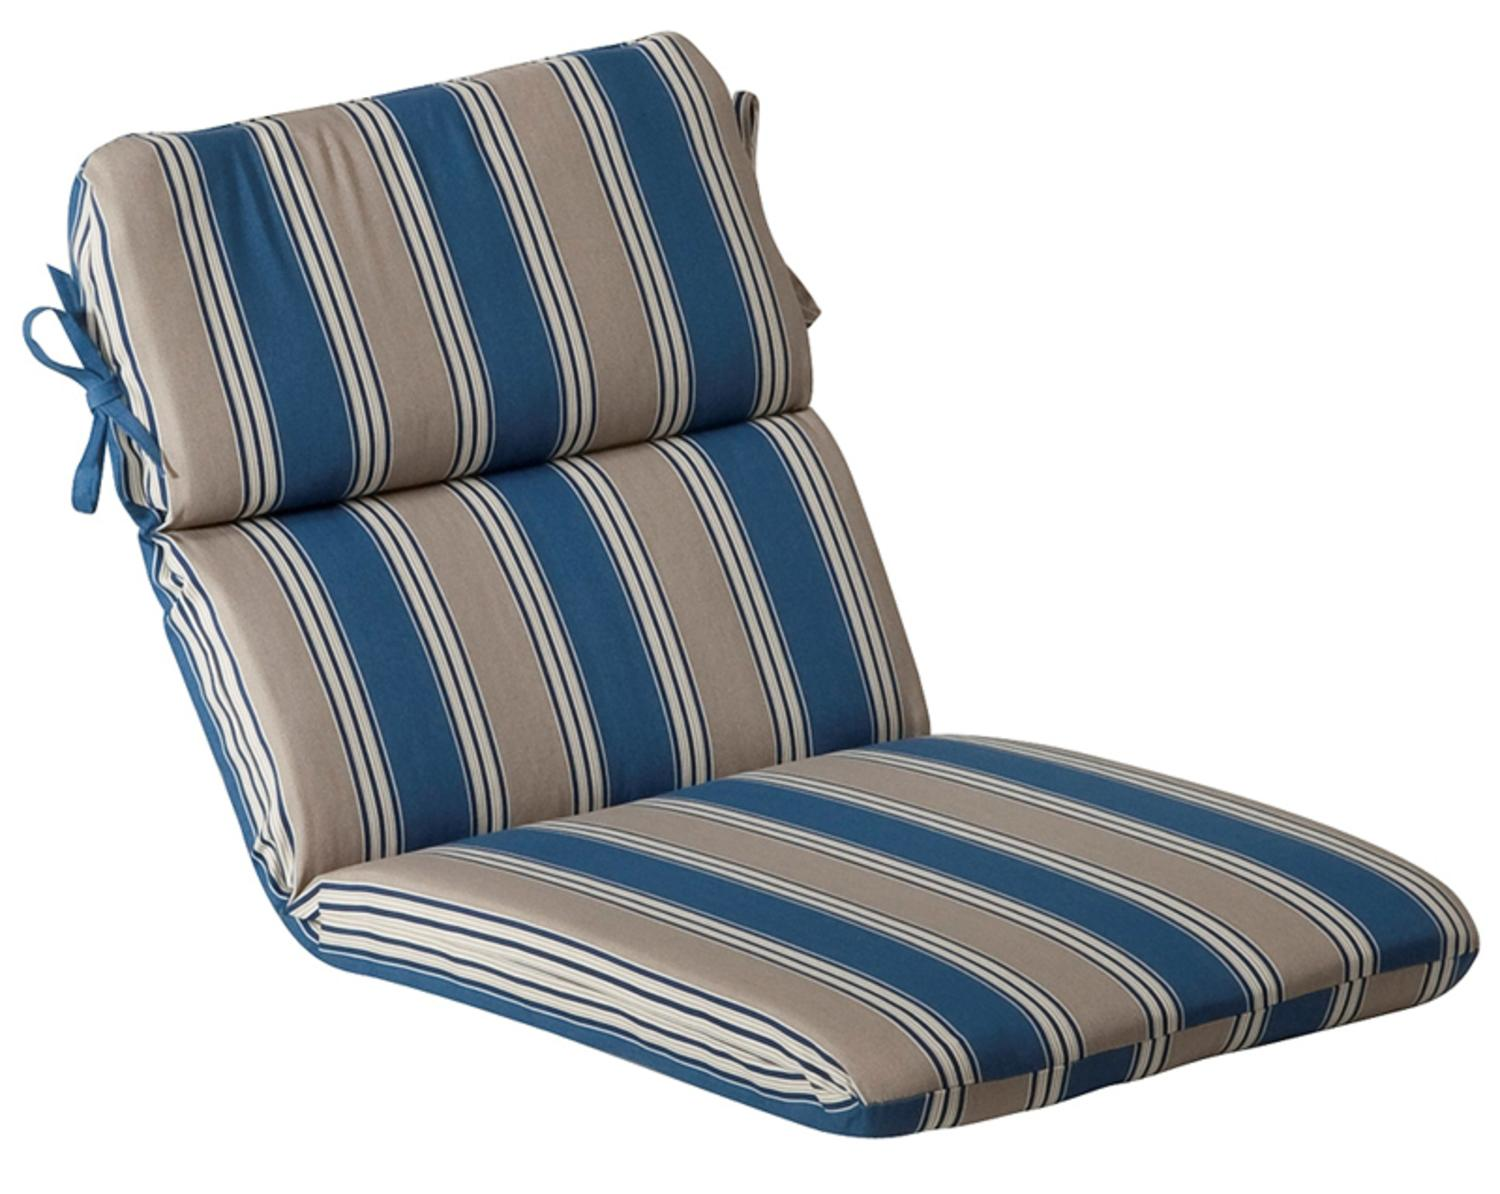 high back patio chair cushions clearance hub around outdoor furniture cushion blue and